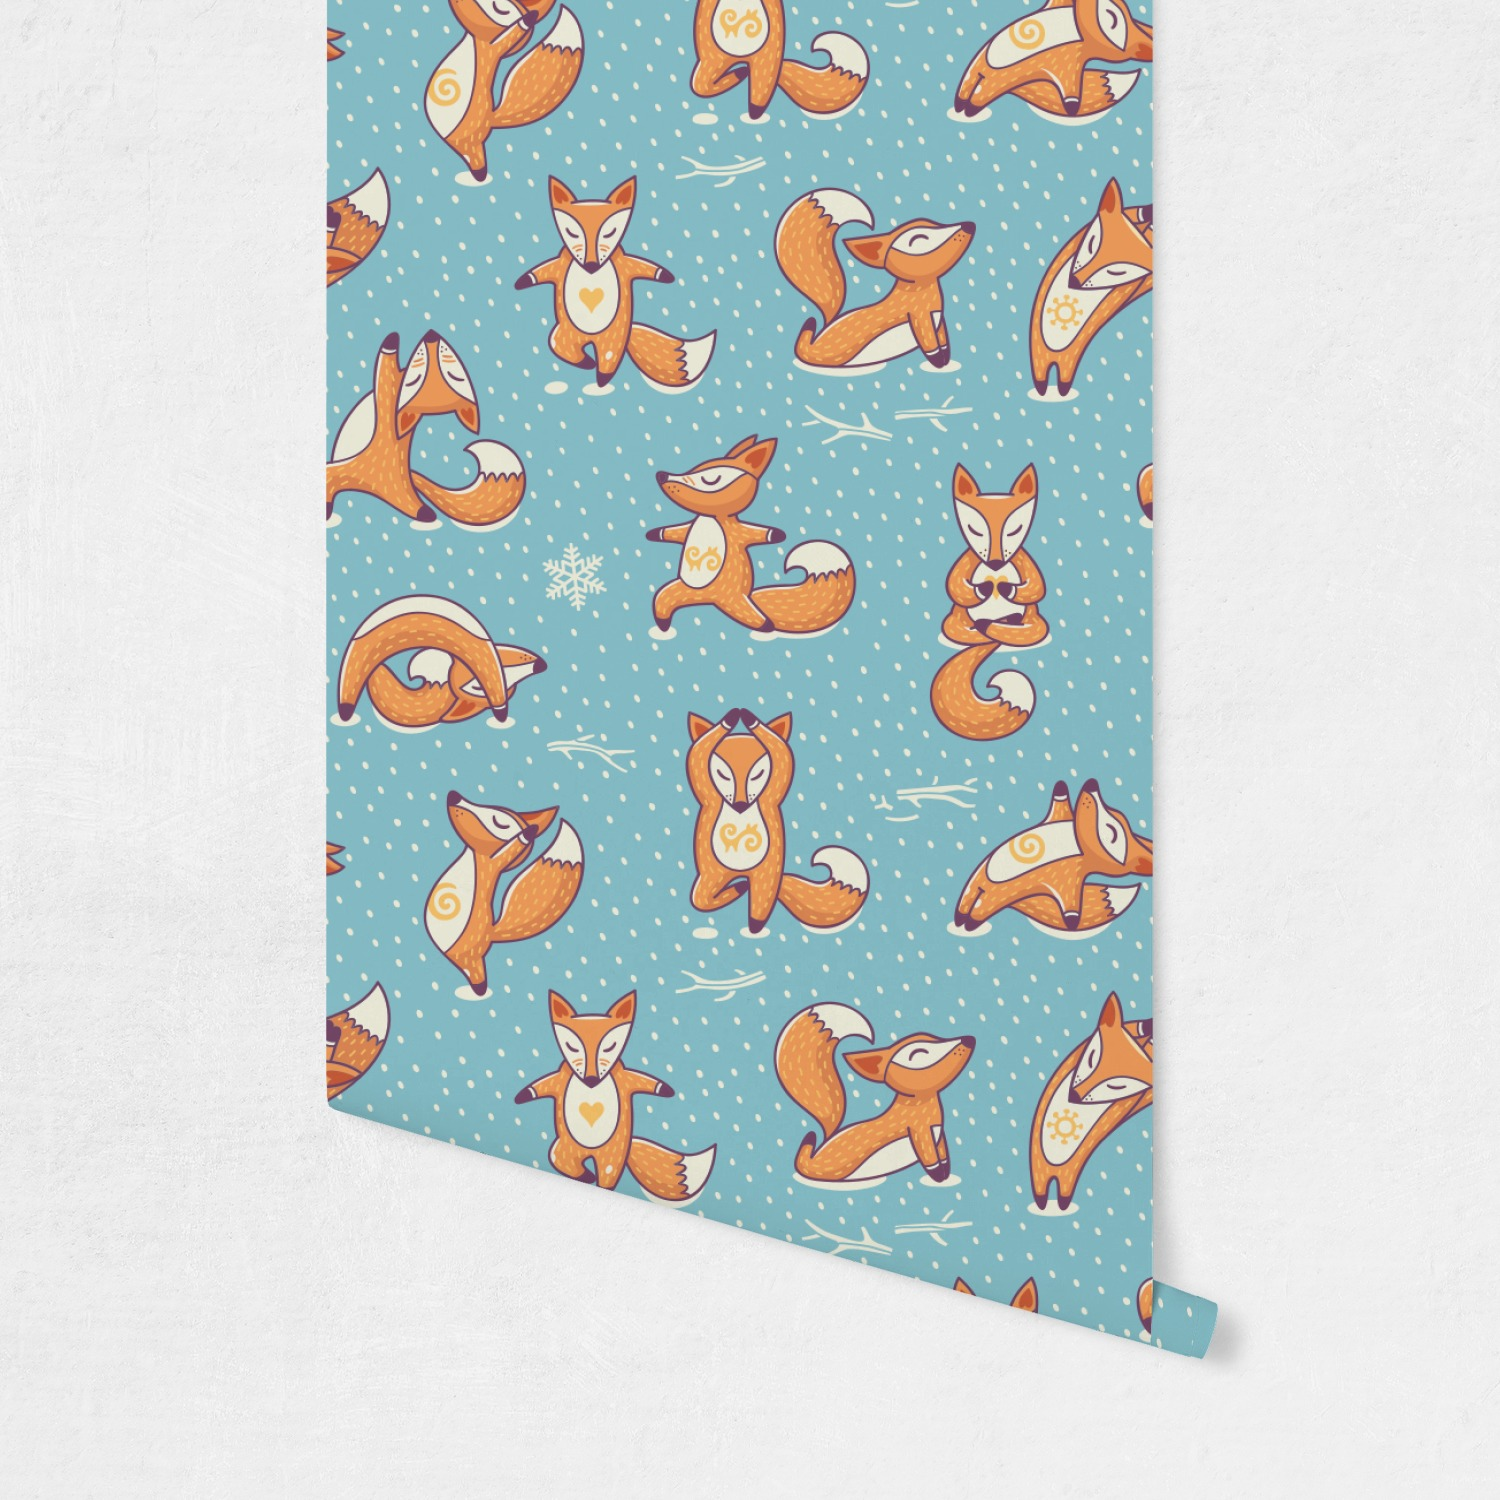 Foxy Yoga Wallpaper Amp Surface Covering Peel Amp Stick